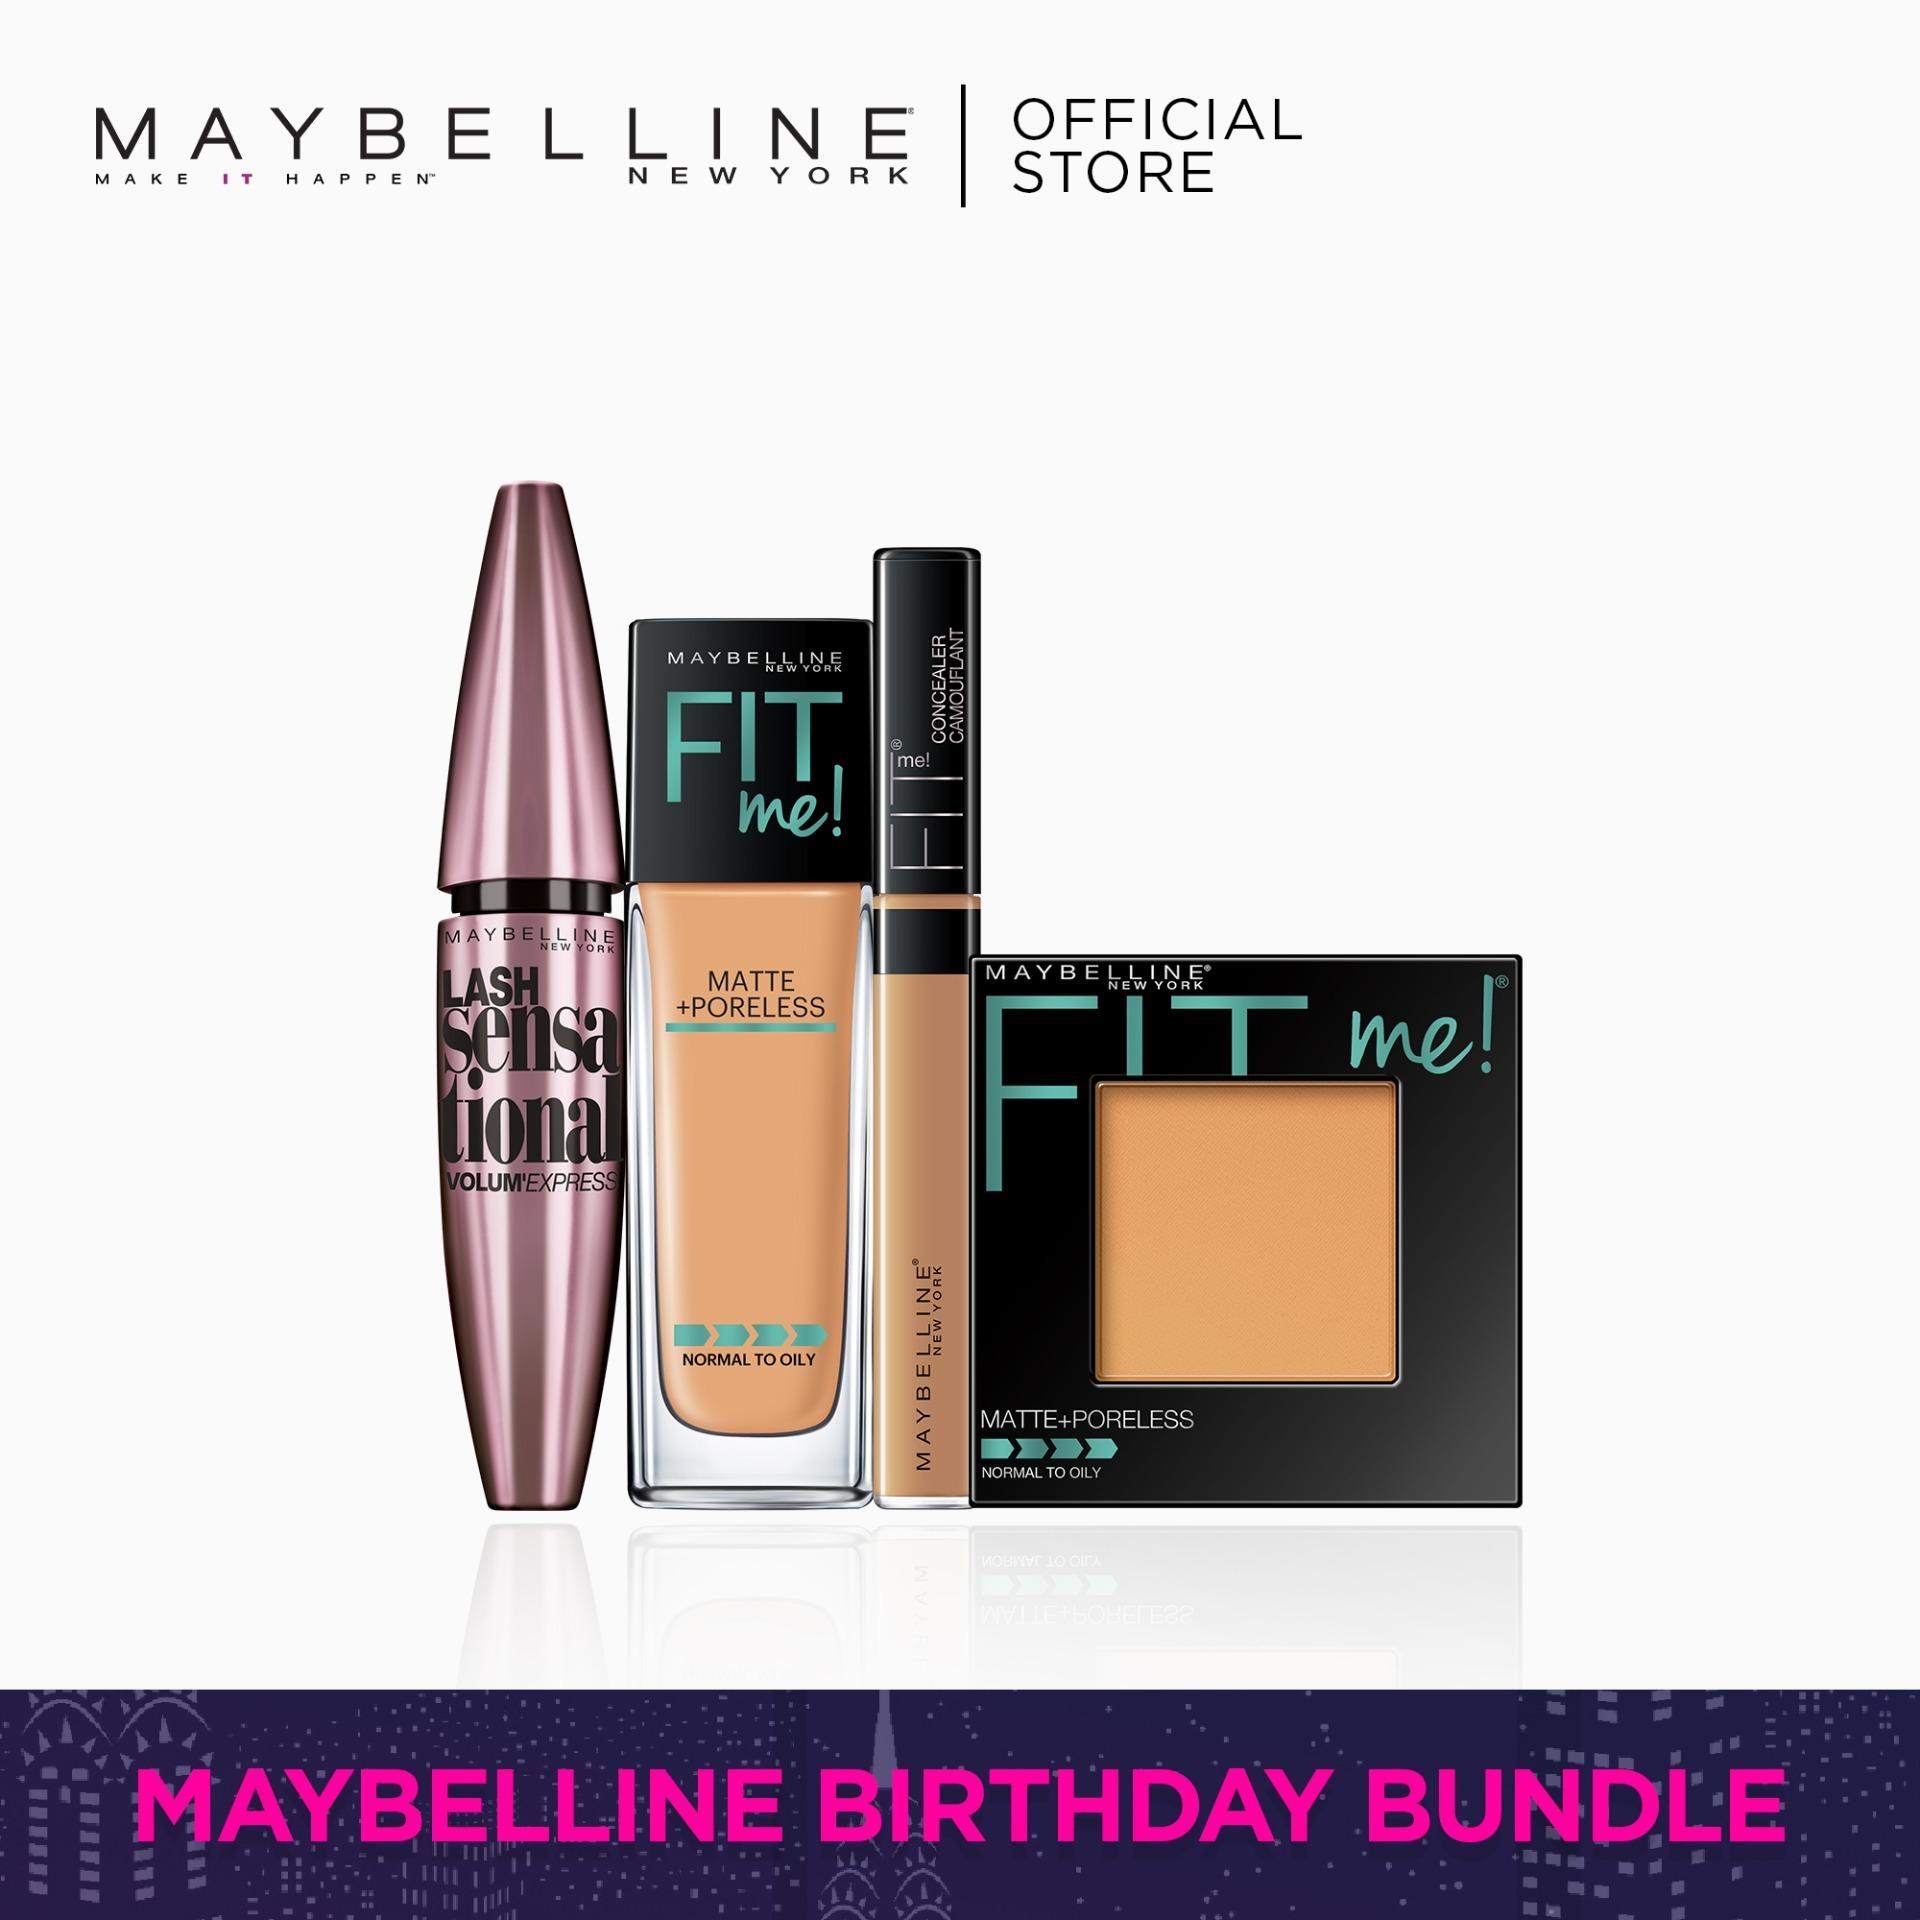 I Found My Fit: 310 Foundation + 310 Powder + 30 Concealer + Lash Sensational by Maybelline Fit Me Philippines